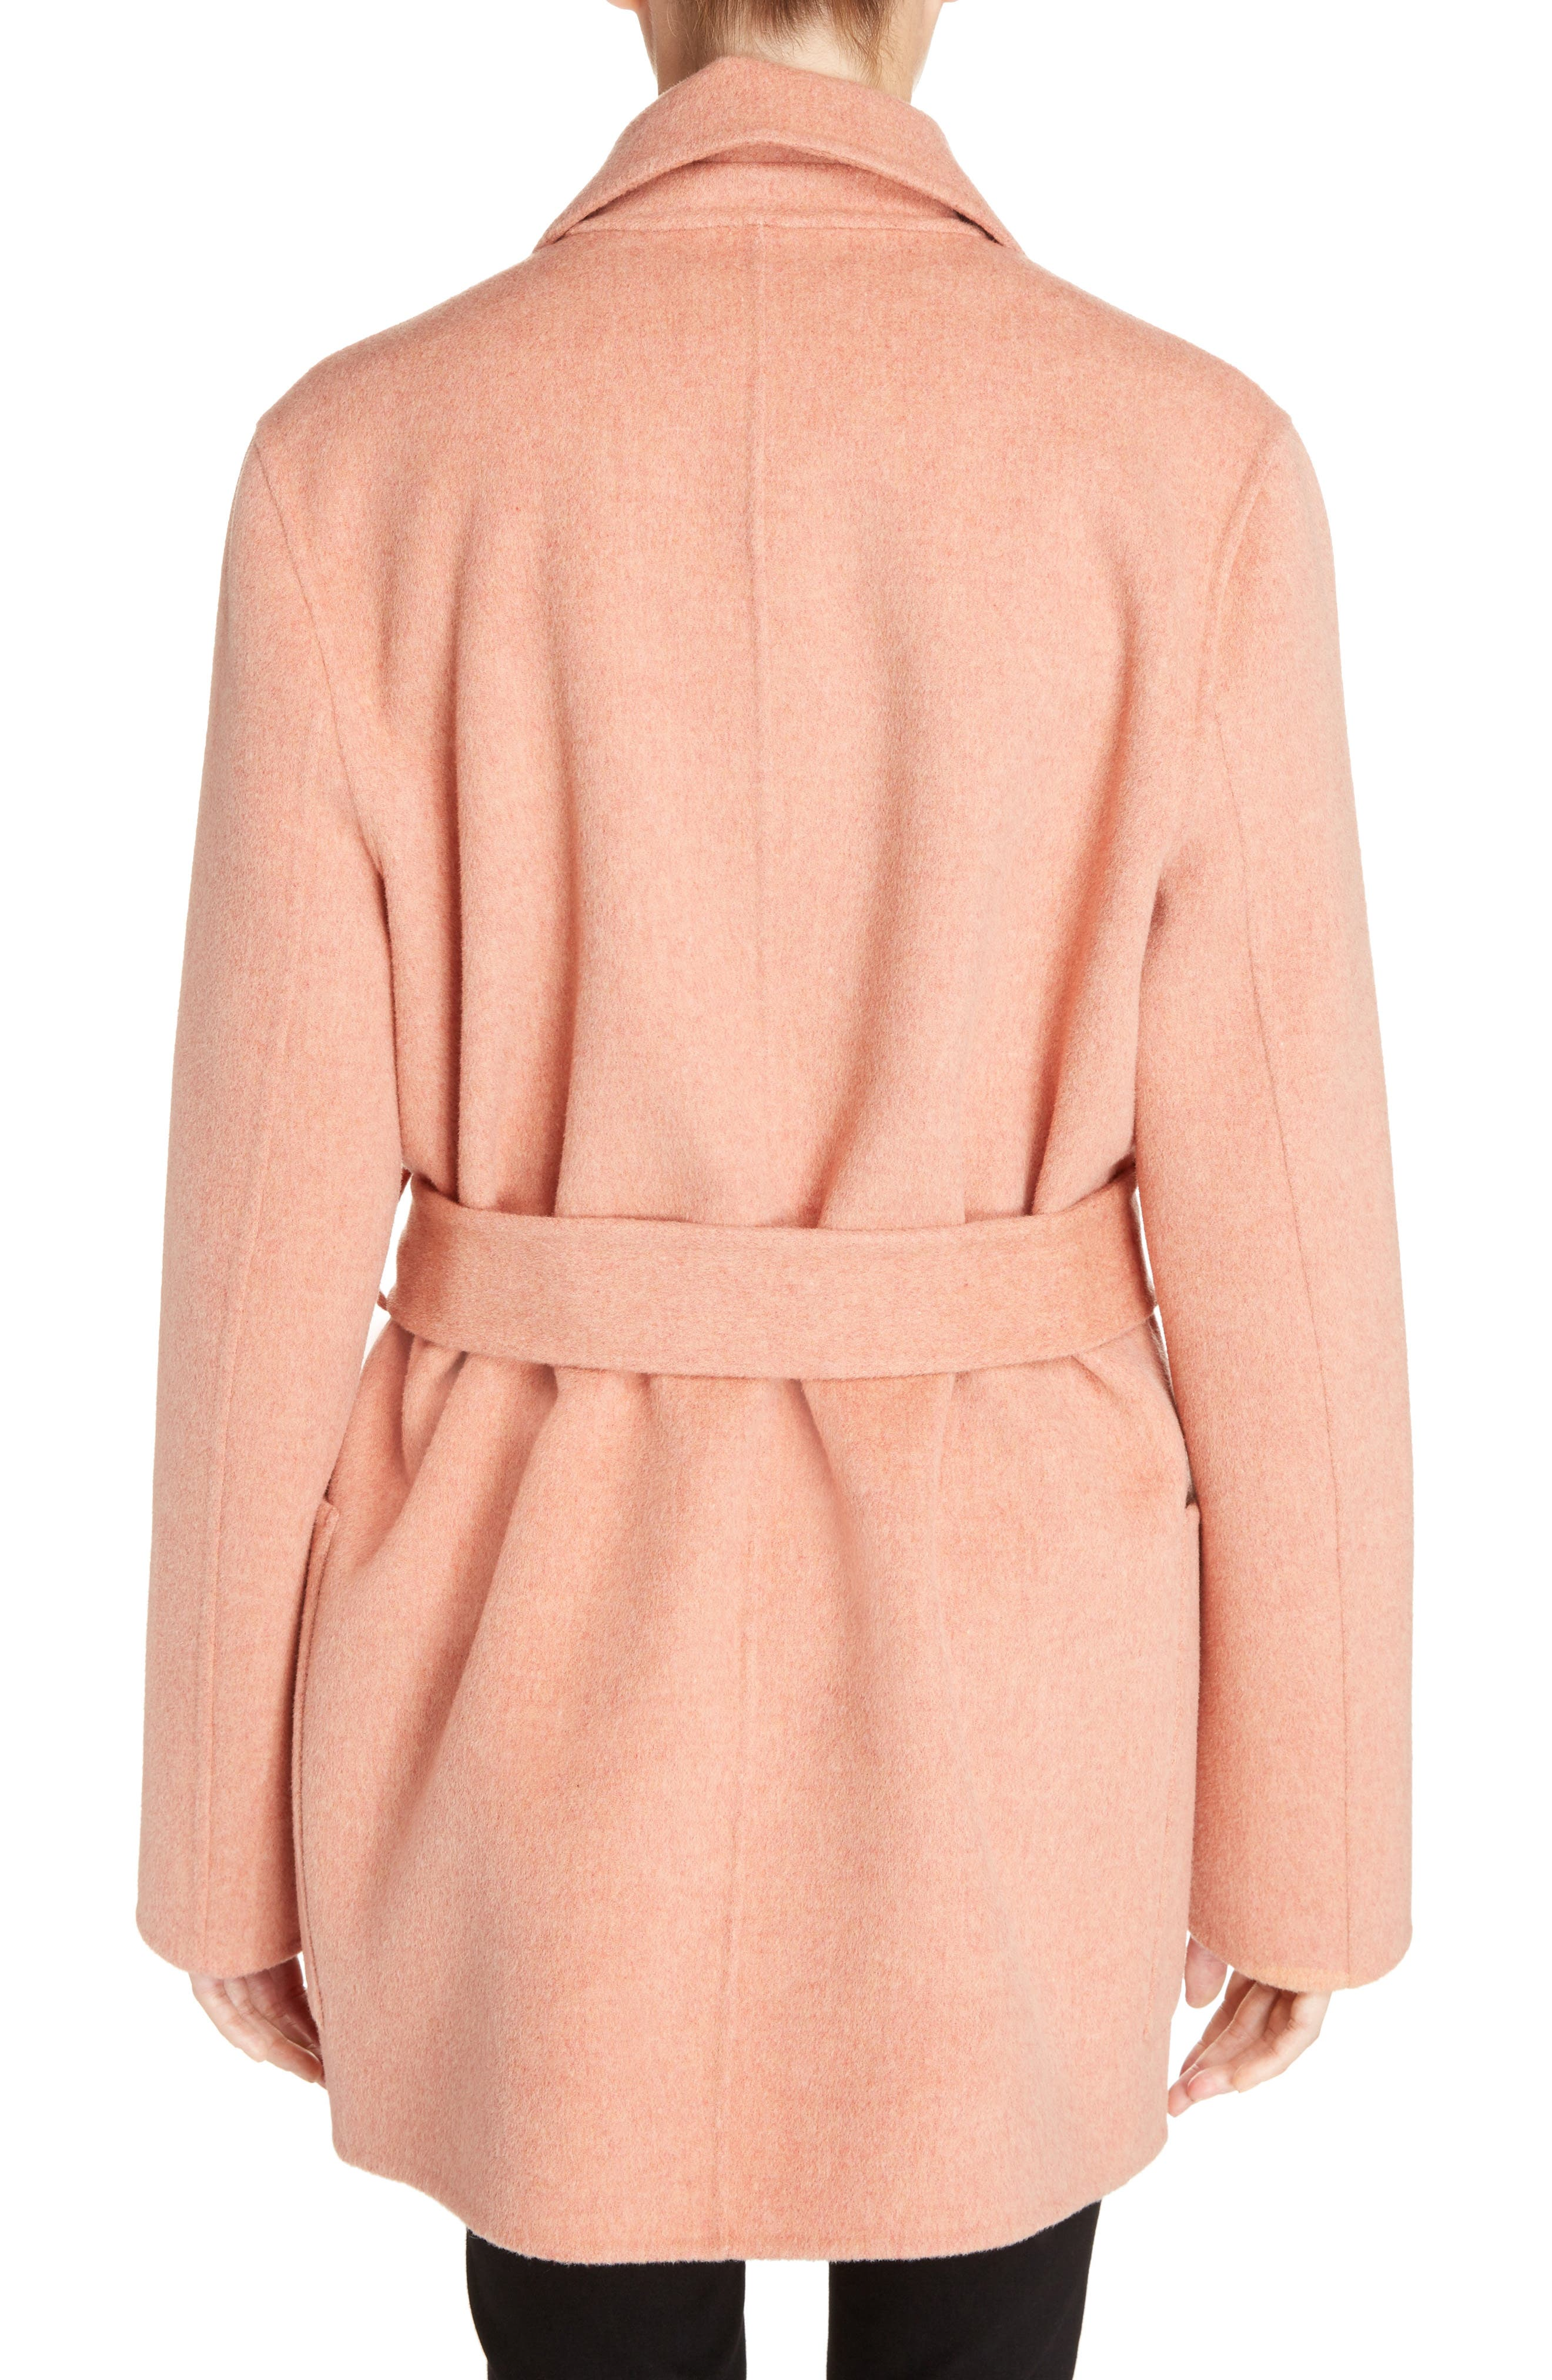 Anika Doublé Wool & Cashmere Coat,                             Alternate thumbnail 2, color,                             Rose Melange